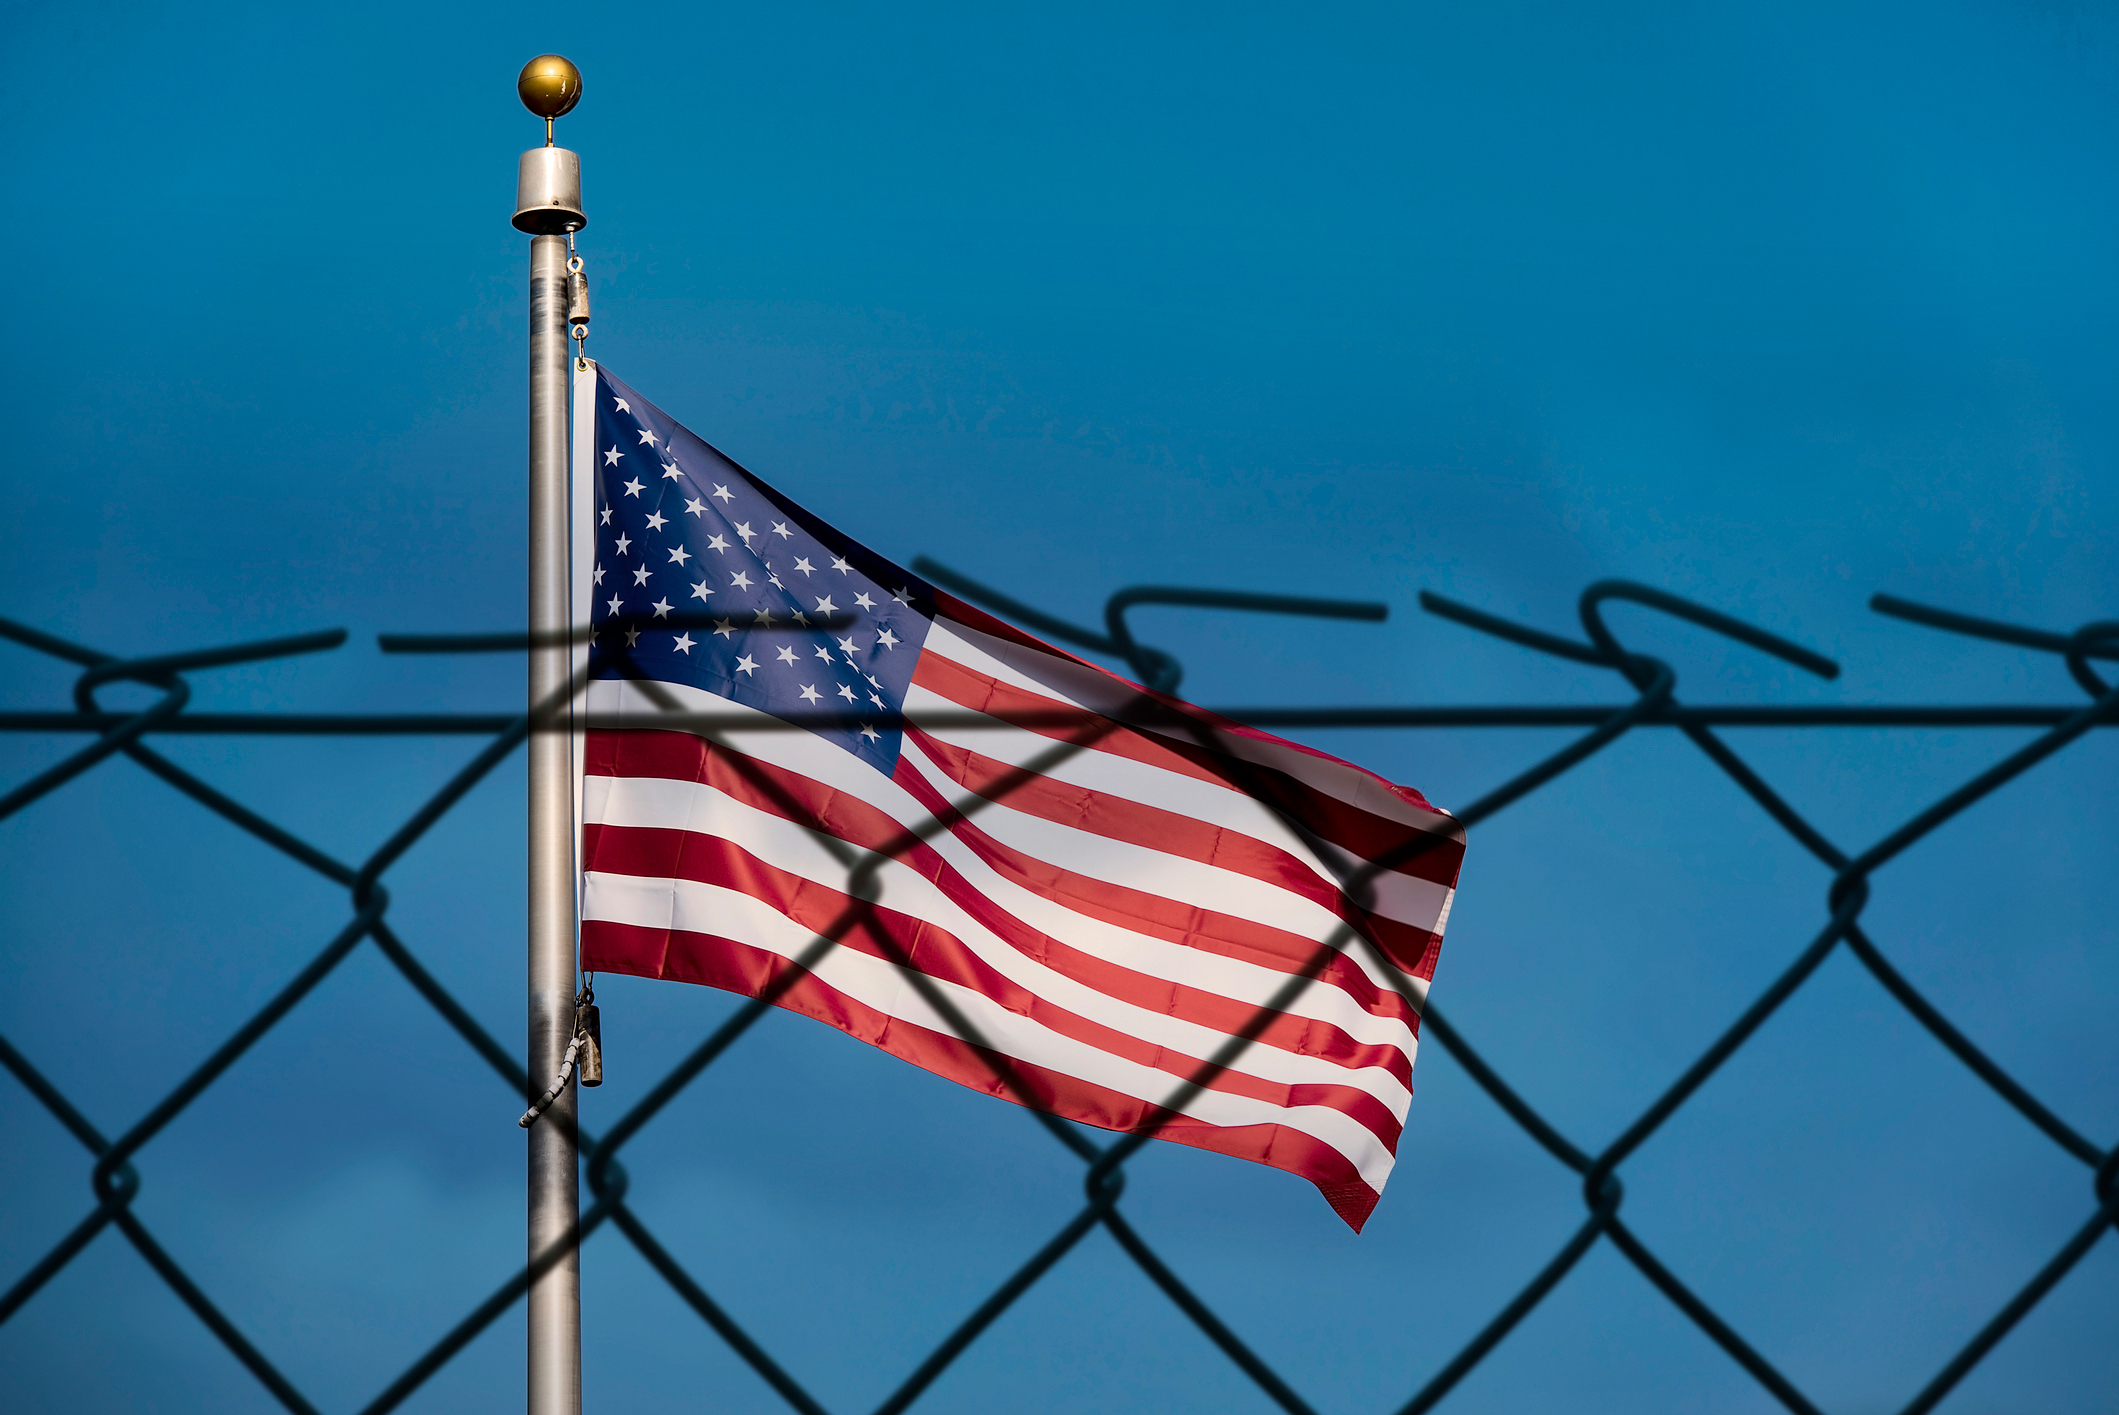 American flag and fence. (Alxey Pnferov via Getty Images)